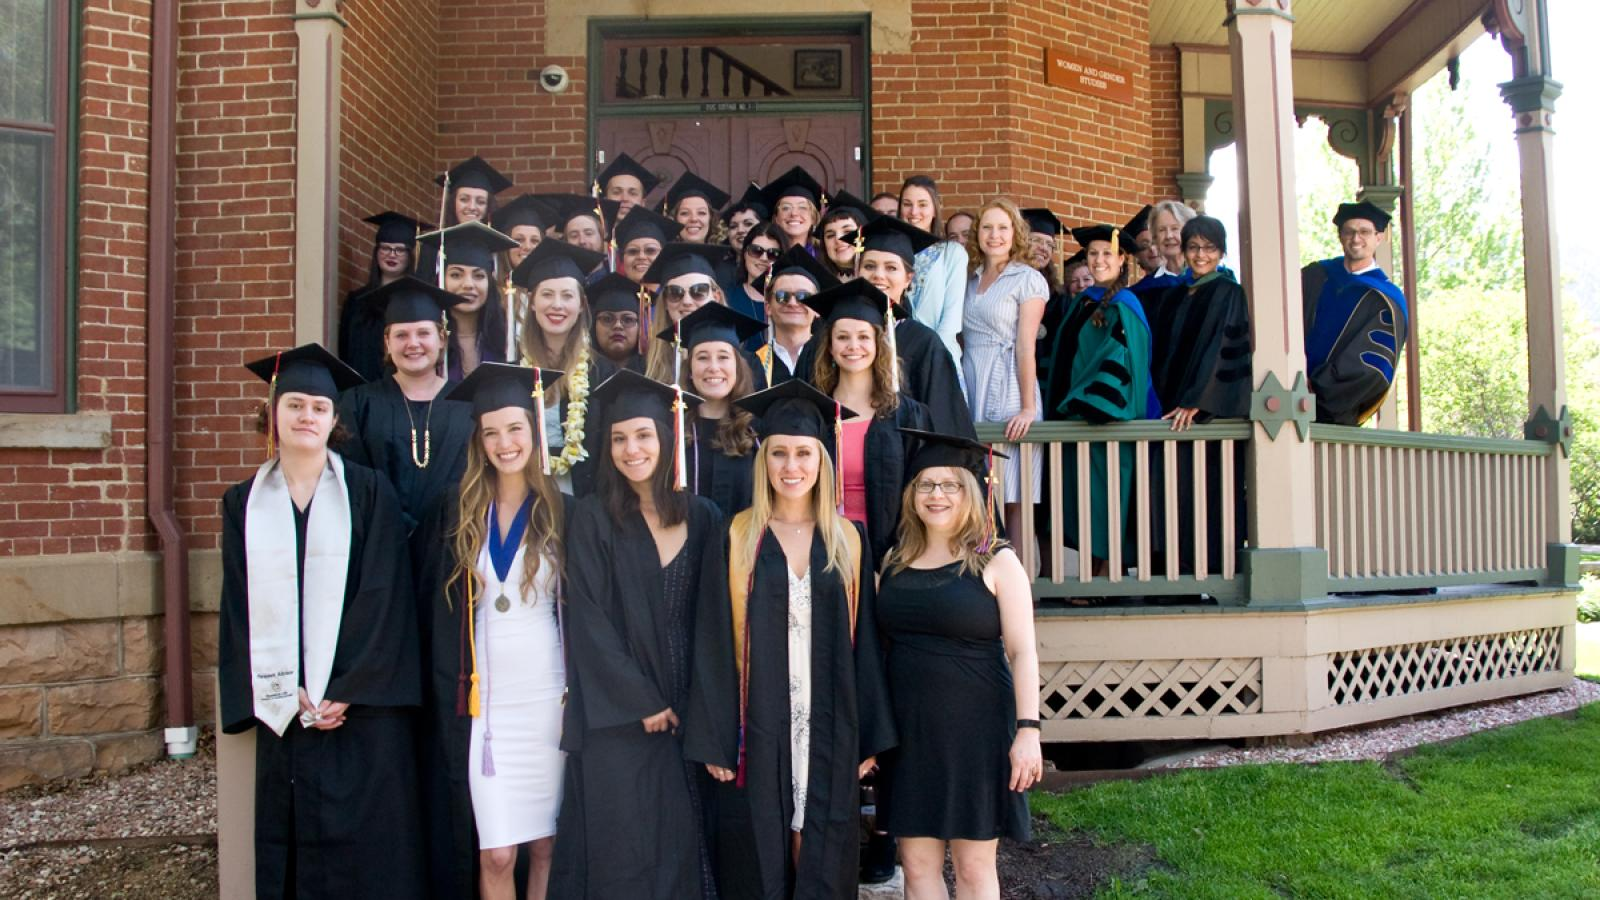 WGST Commencement 2017